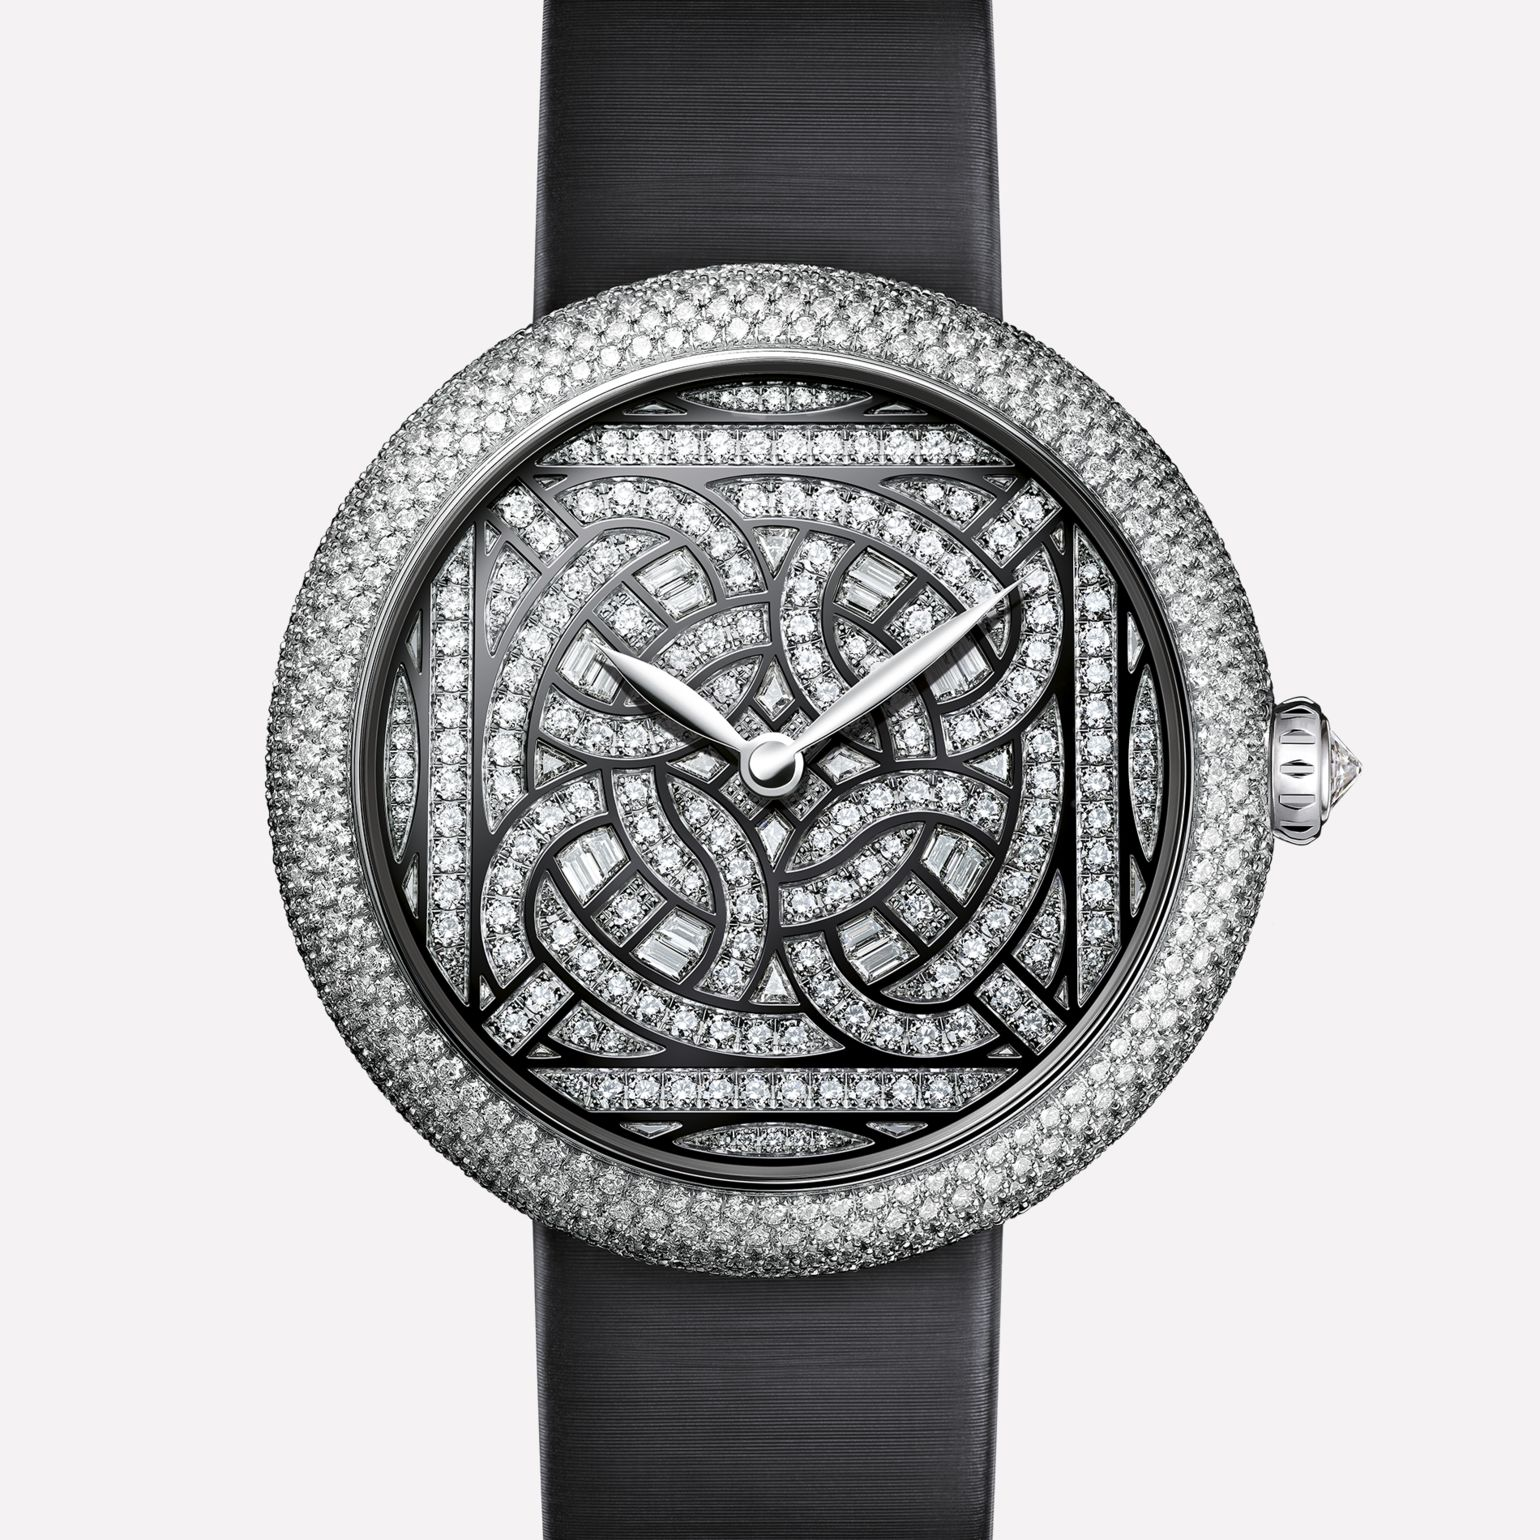 Mademoiselle Privé White gold and diamonds